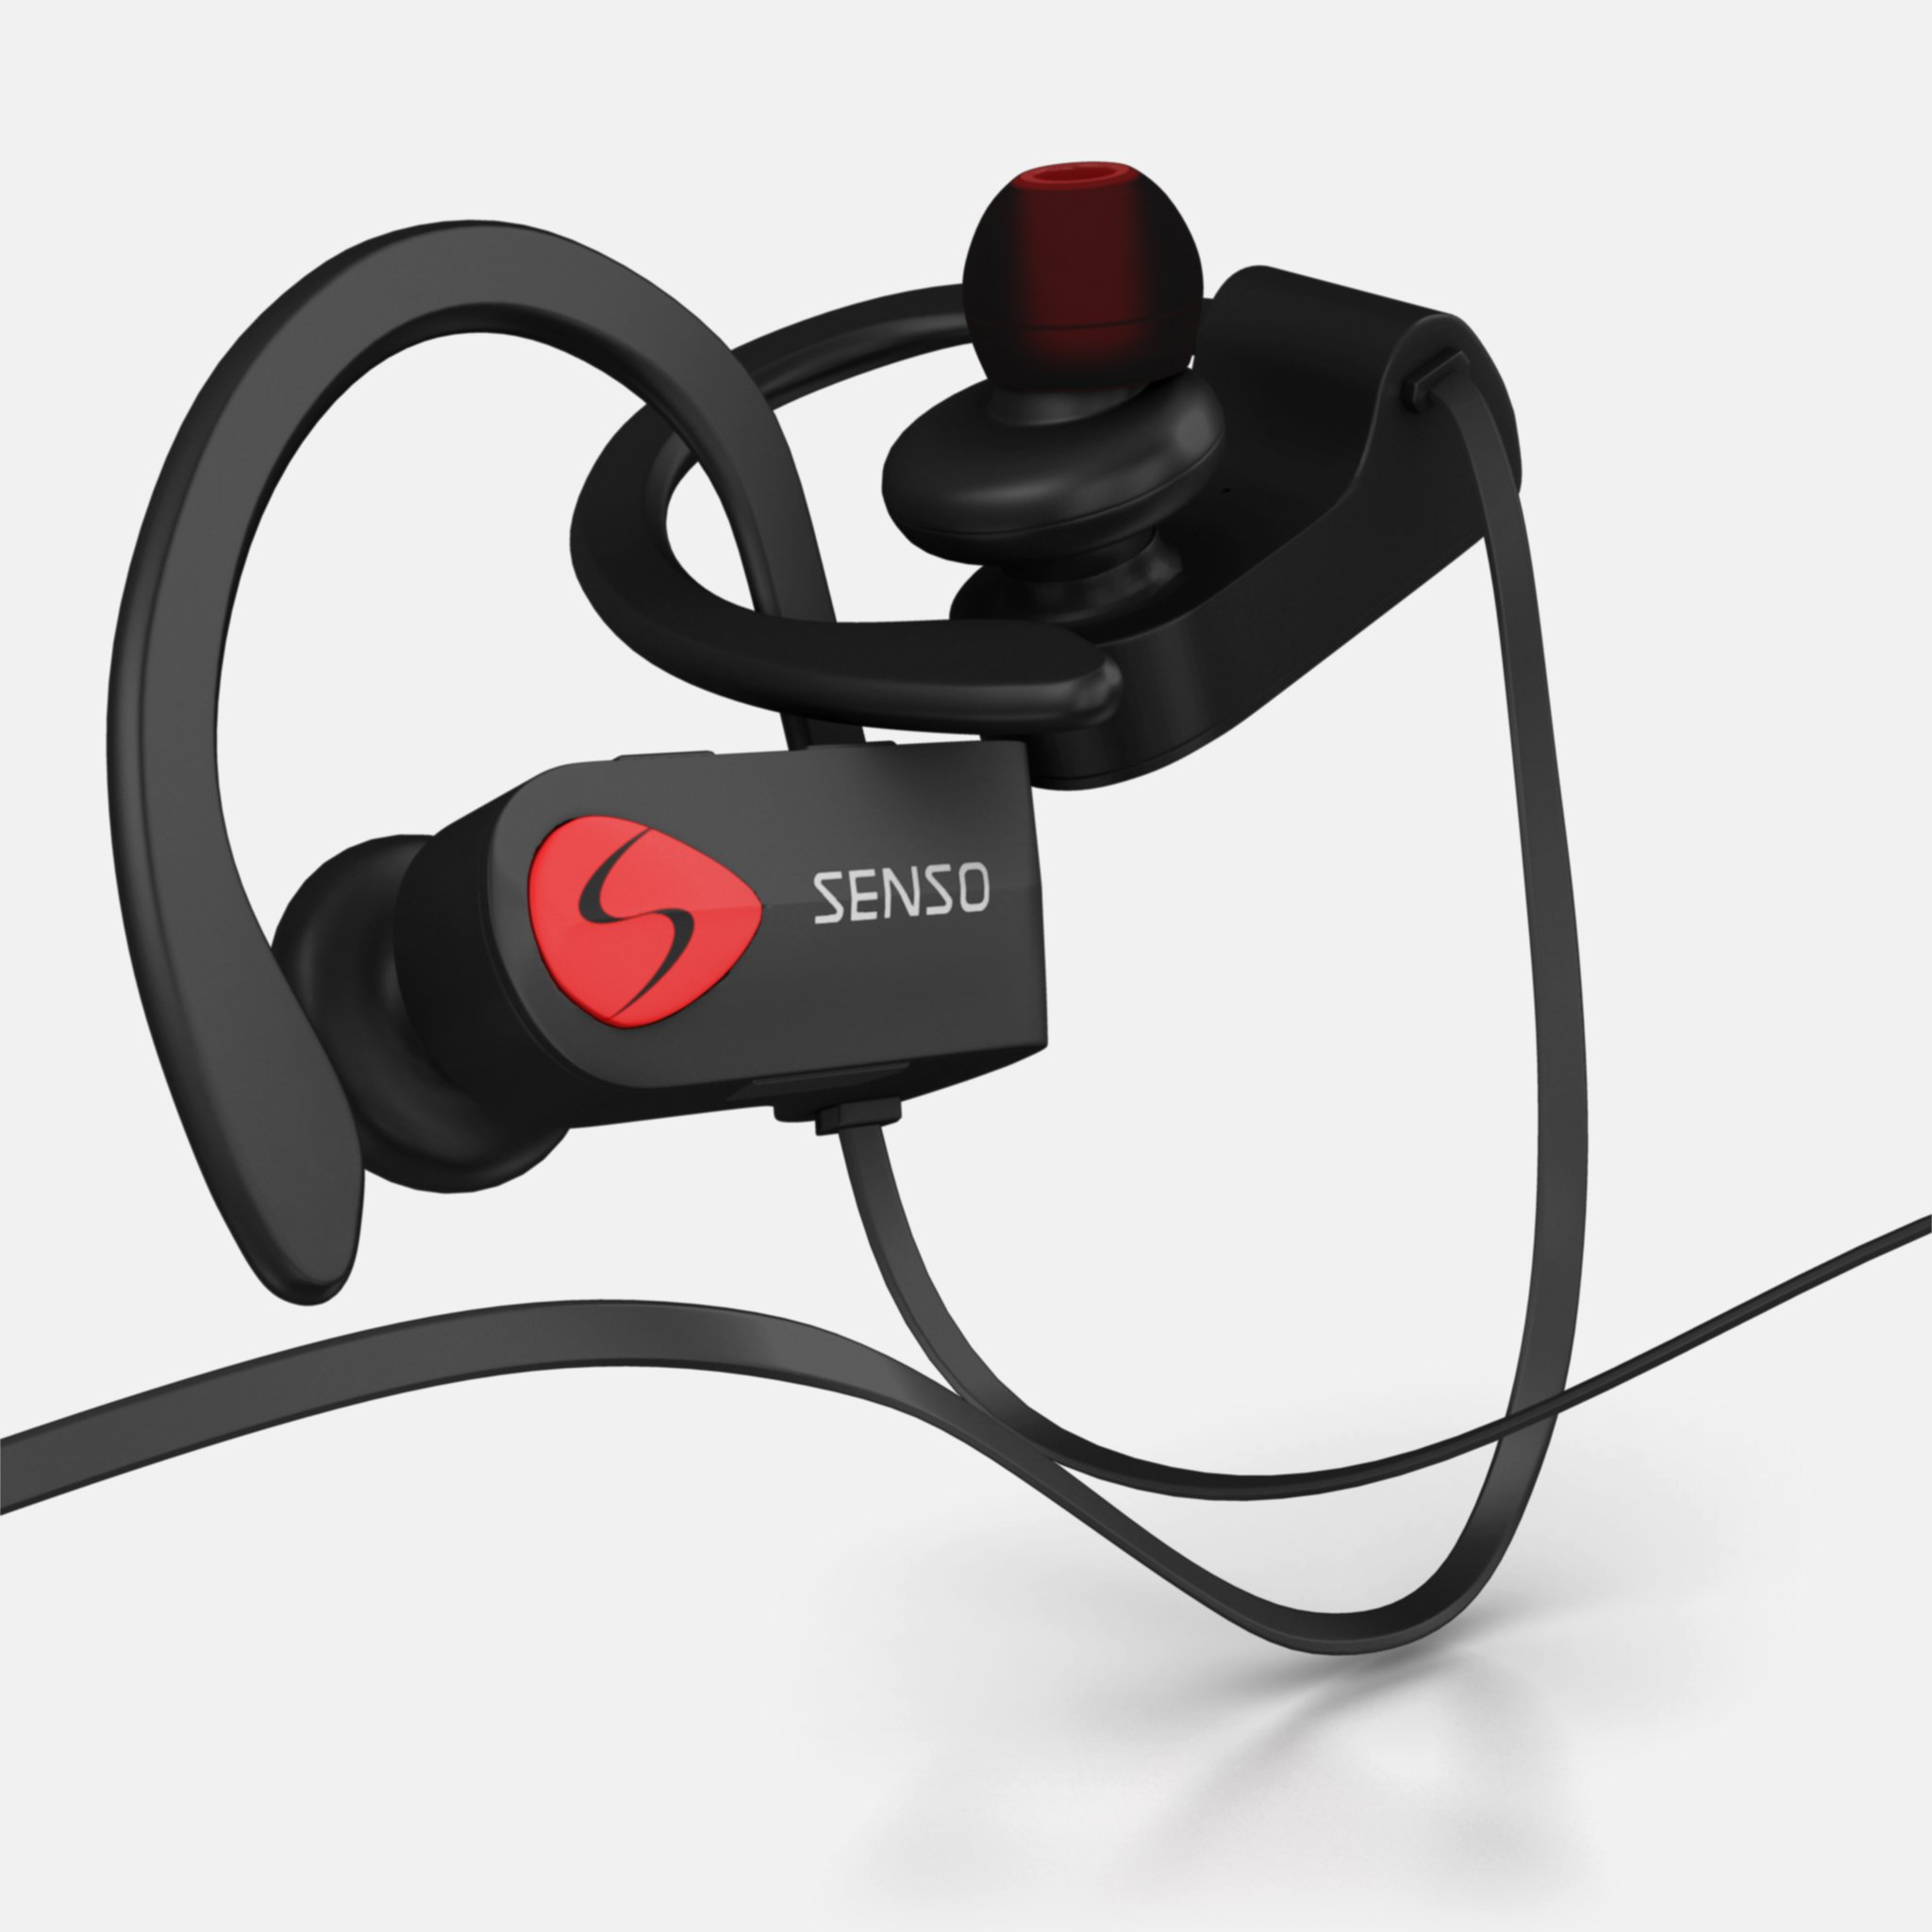 SENSO Bluetooth Headphones, Best Wireless Sports Earphones w/Mic IPX7 Waterproof HD Stereo Sweatproof Earbuds for Gym Running Workout 8 Hour Battery Noise Cancelling Headsets by Senso (Image #9)